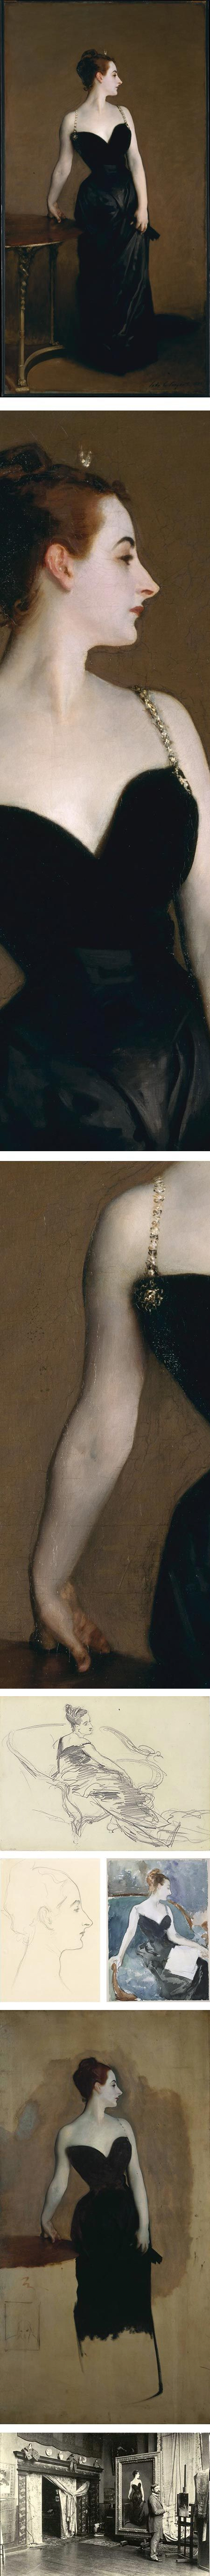 Unfinished full size study, including original pre-censorship dangling shoulder strap, of John Singer Sargent's Madame X